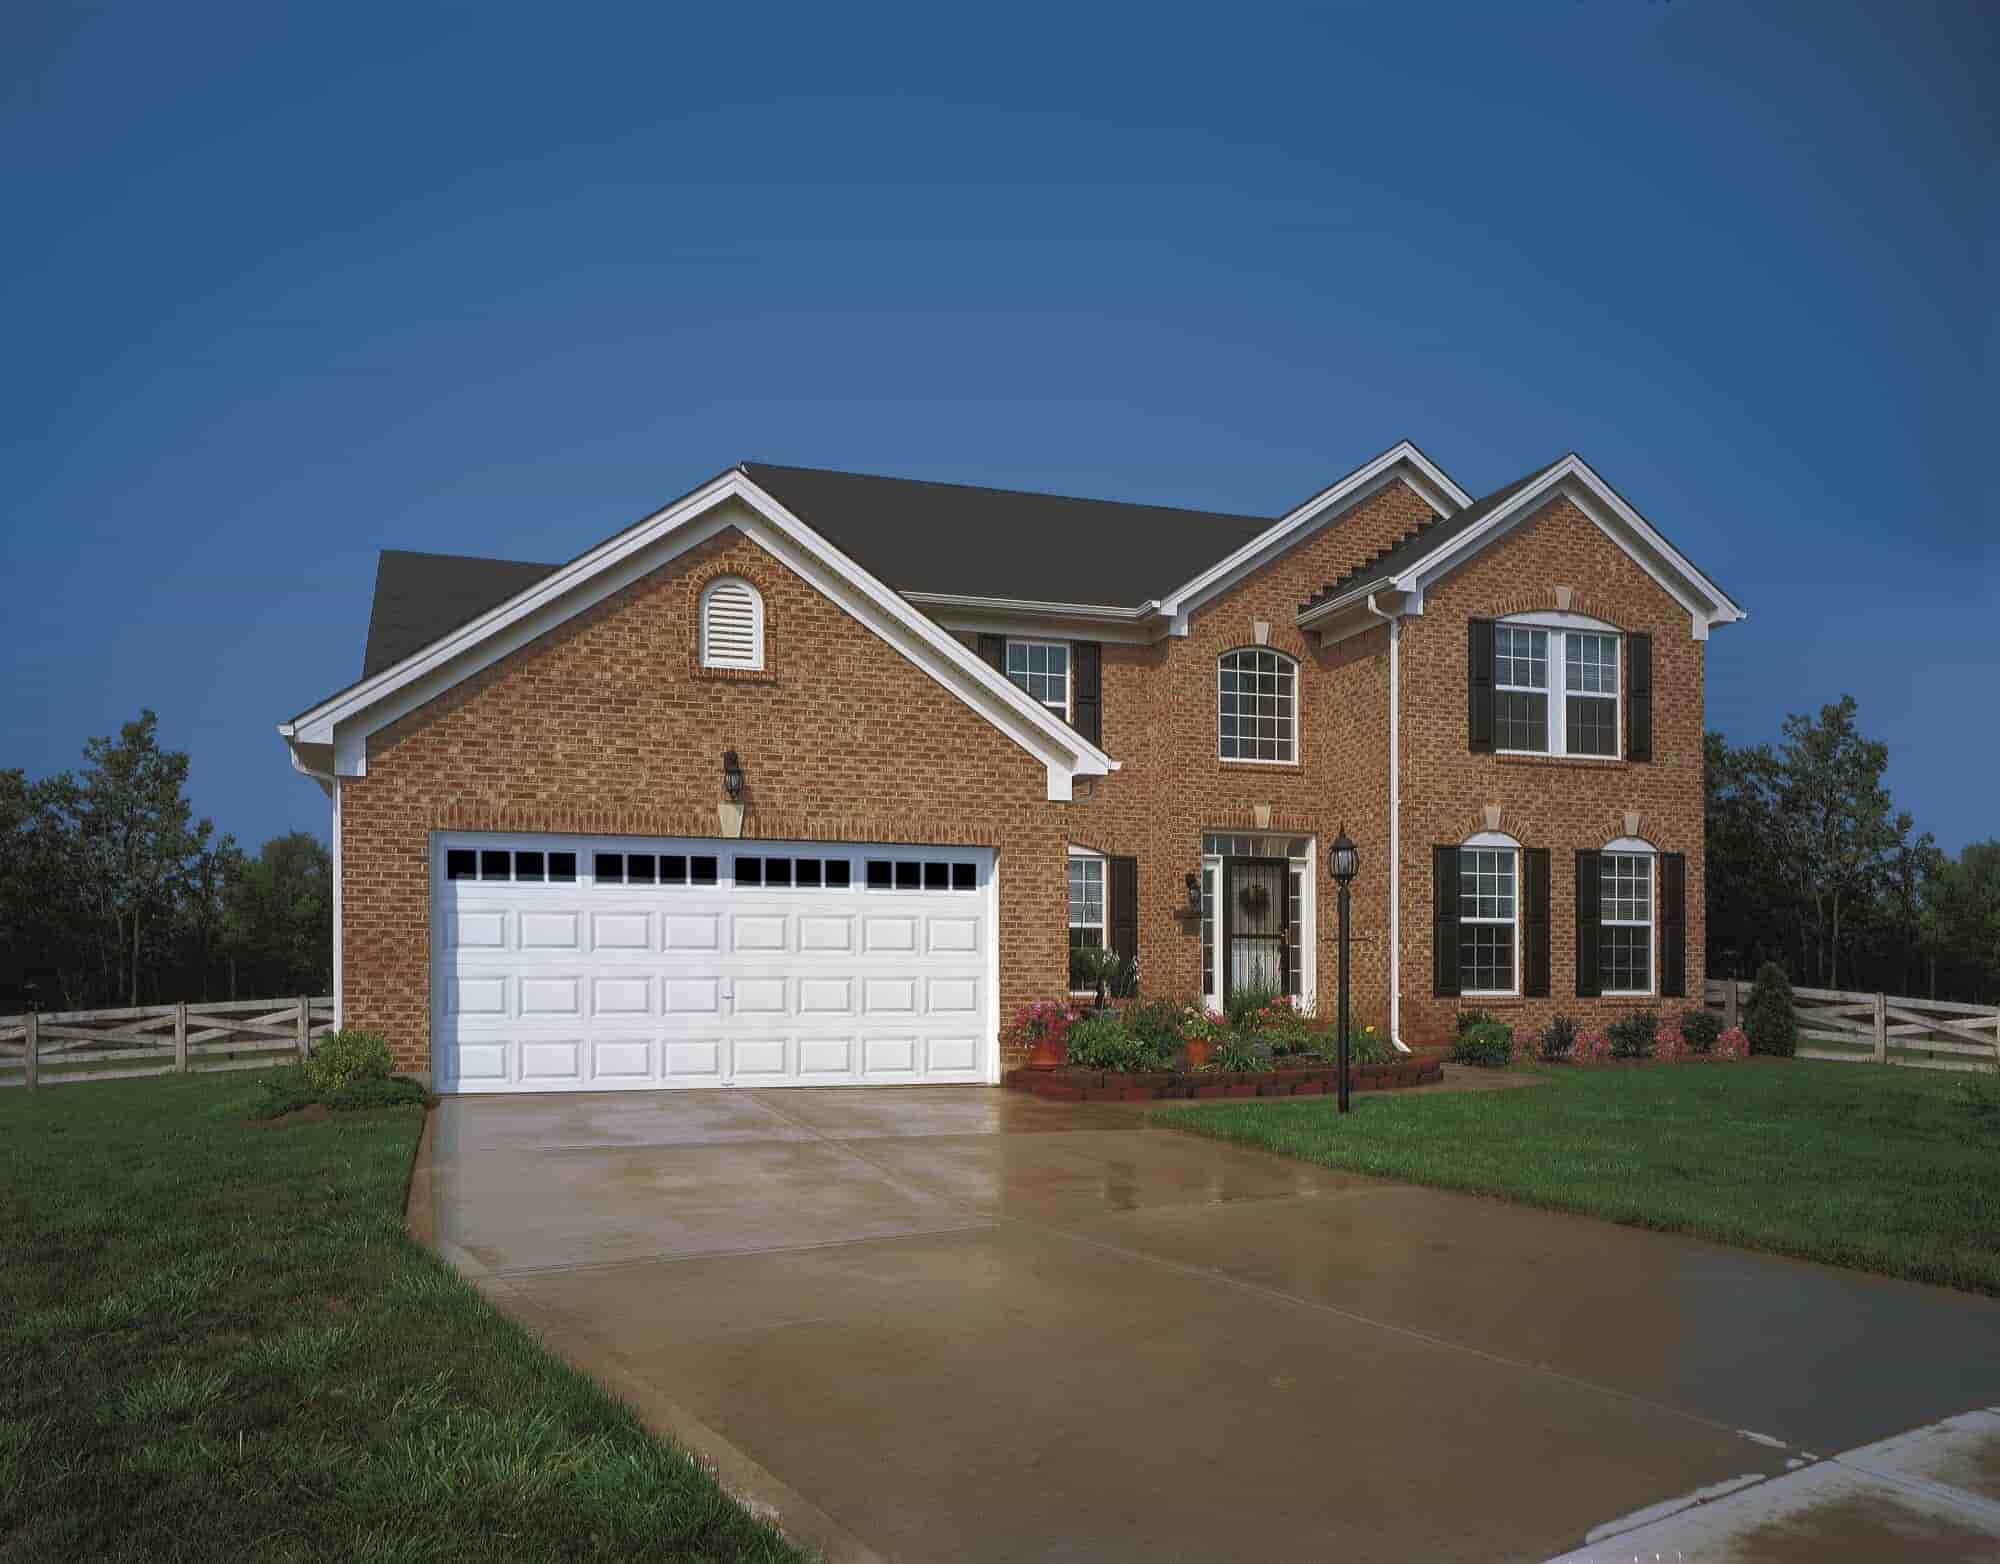 Garage Door Sales & Services in Ridgewood, NJ